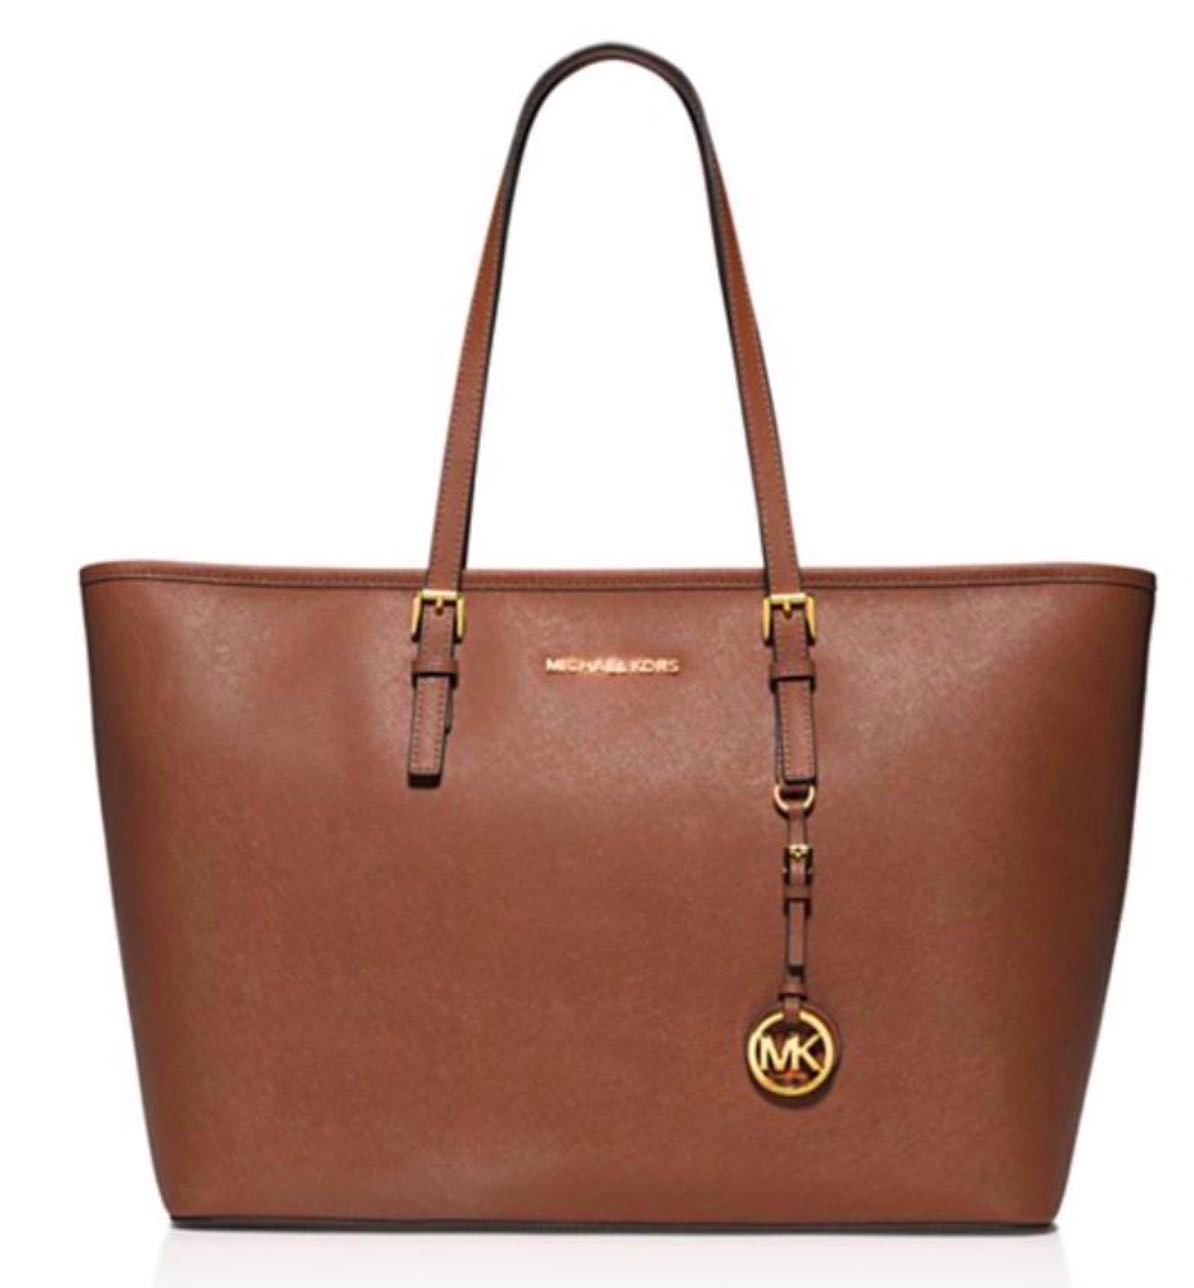 d3319c94b82c NWT $298 Michael Kors Medium Jet Set Top Zip Multi-Function Leather Tote!